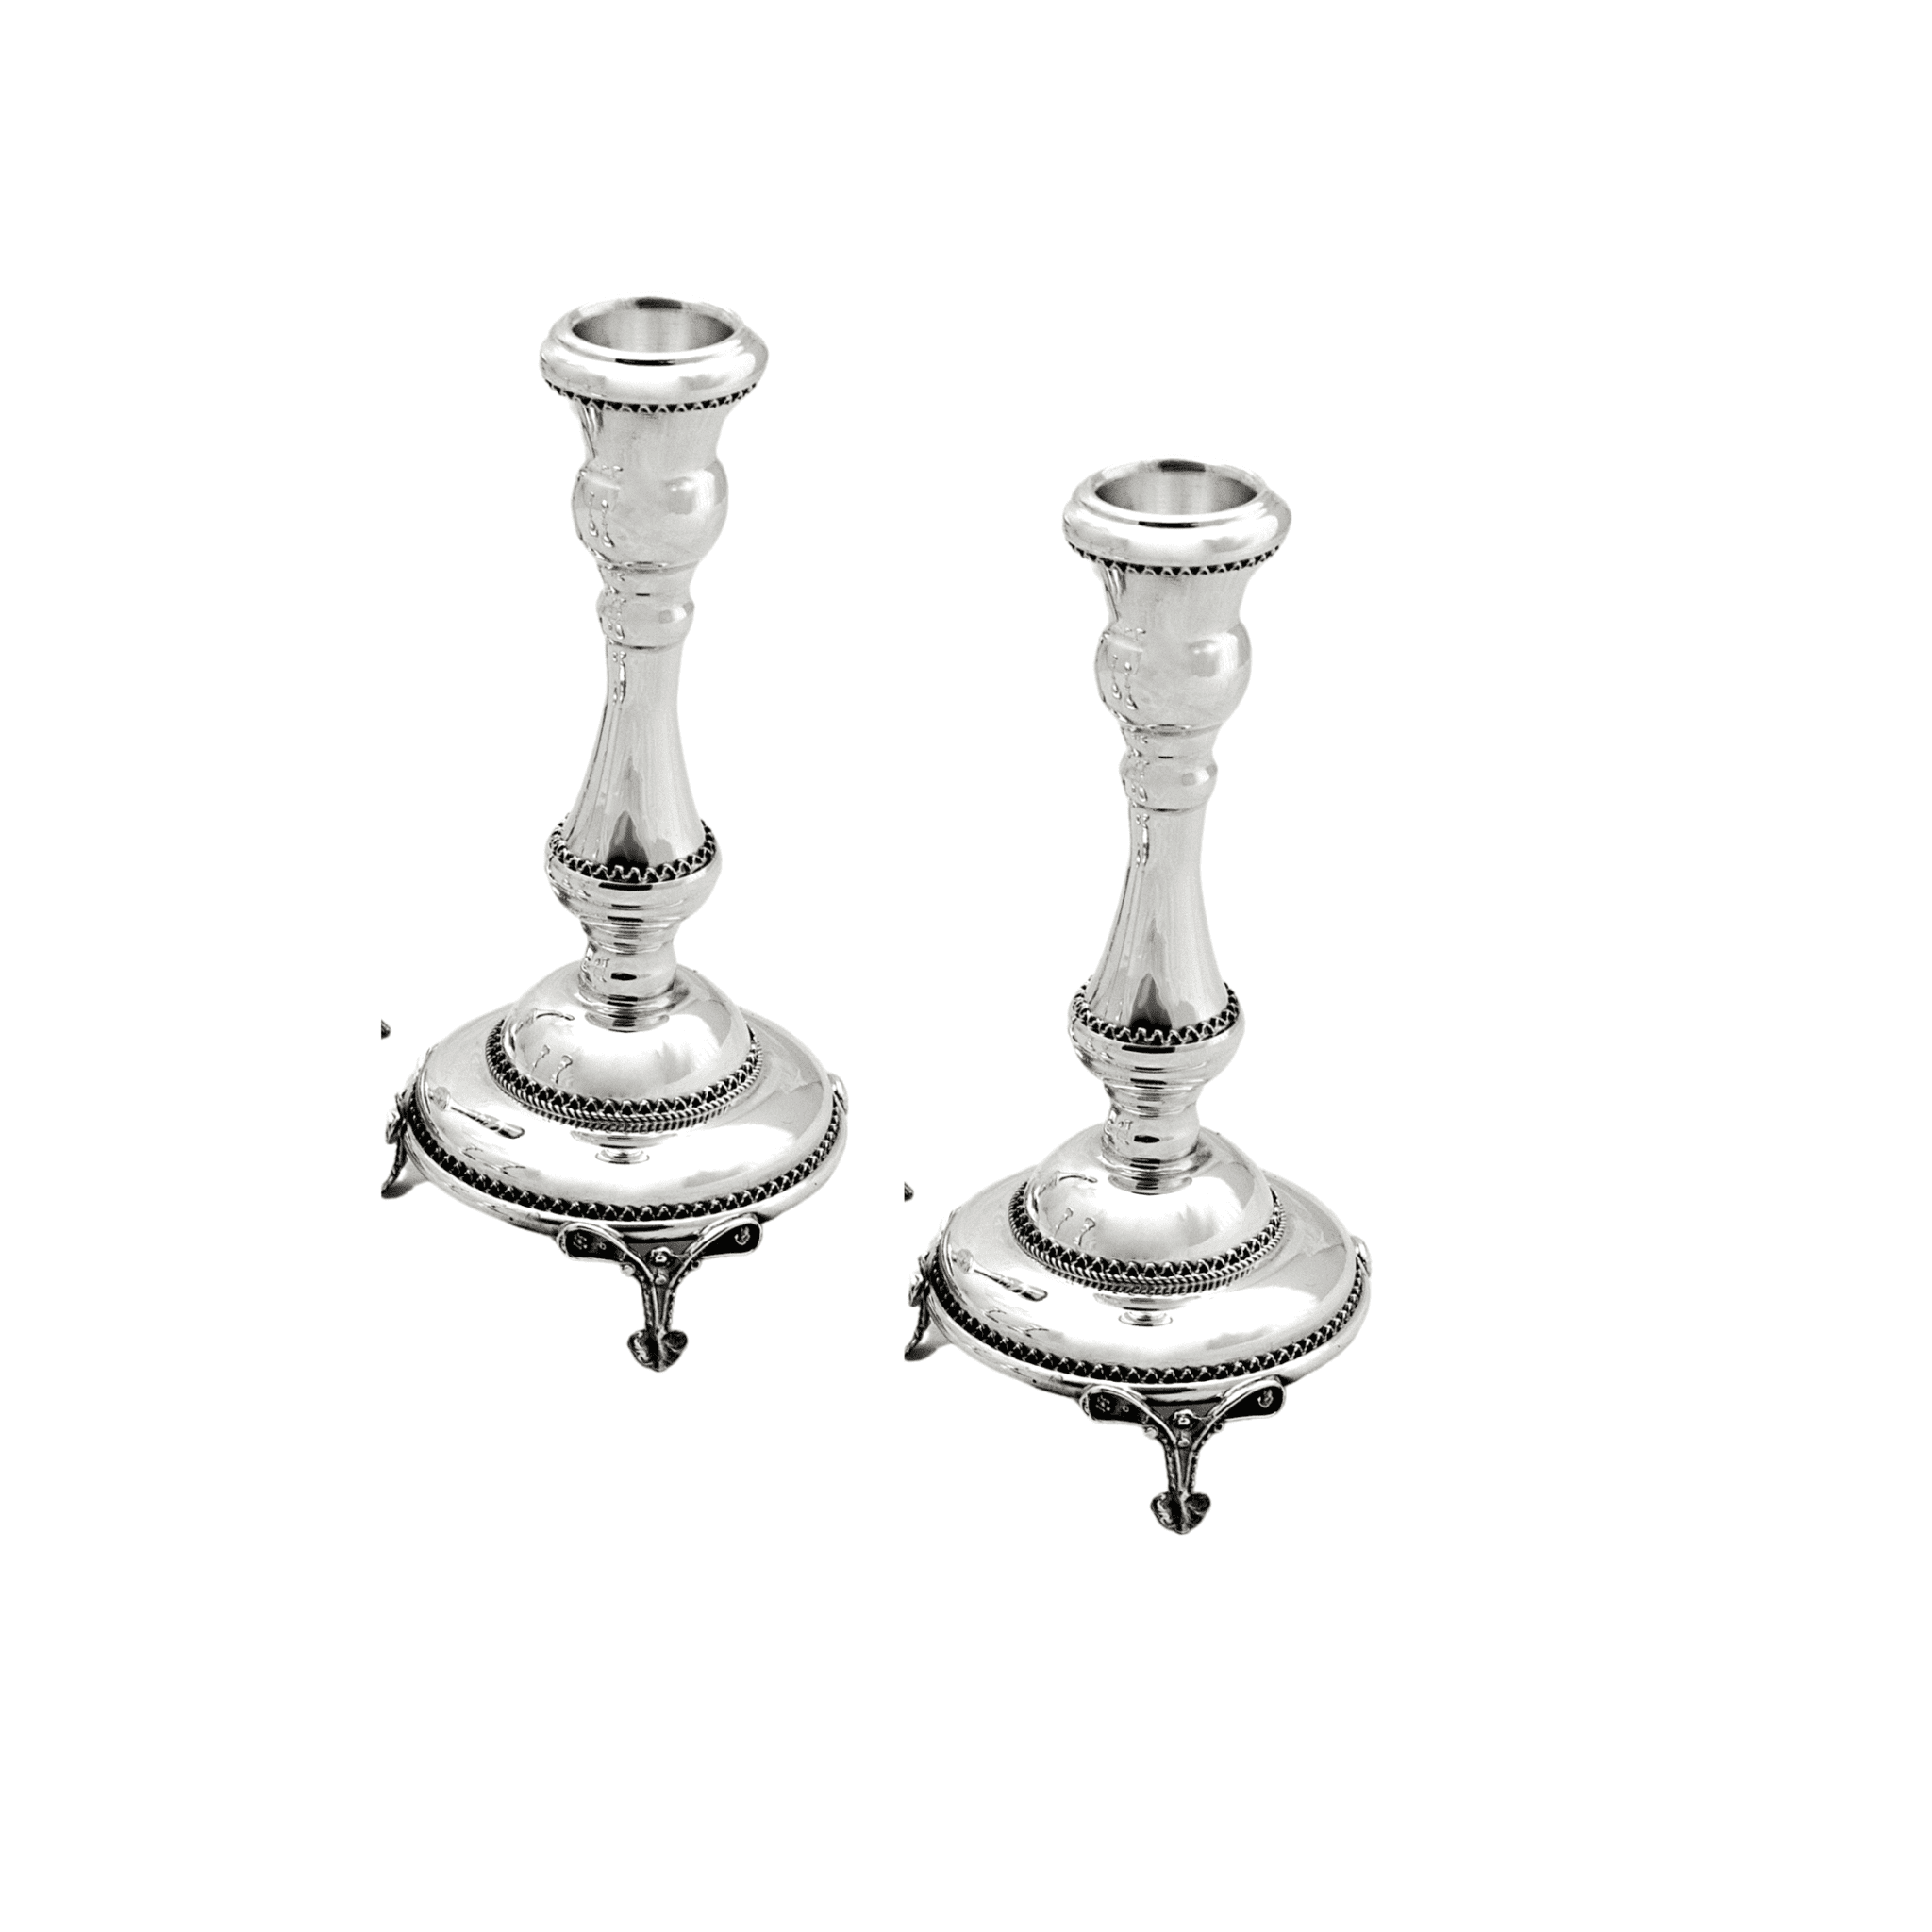 Silver Filigree Candle Holders with Legs